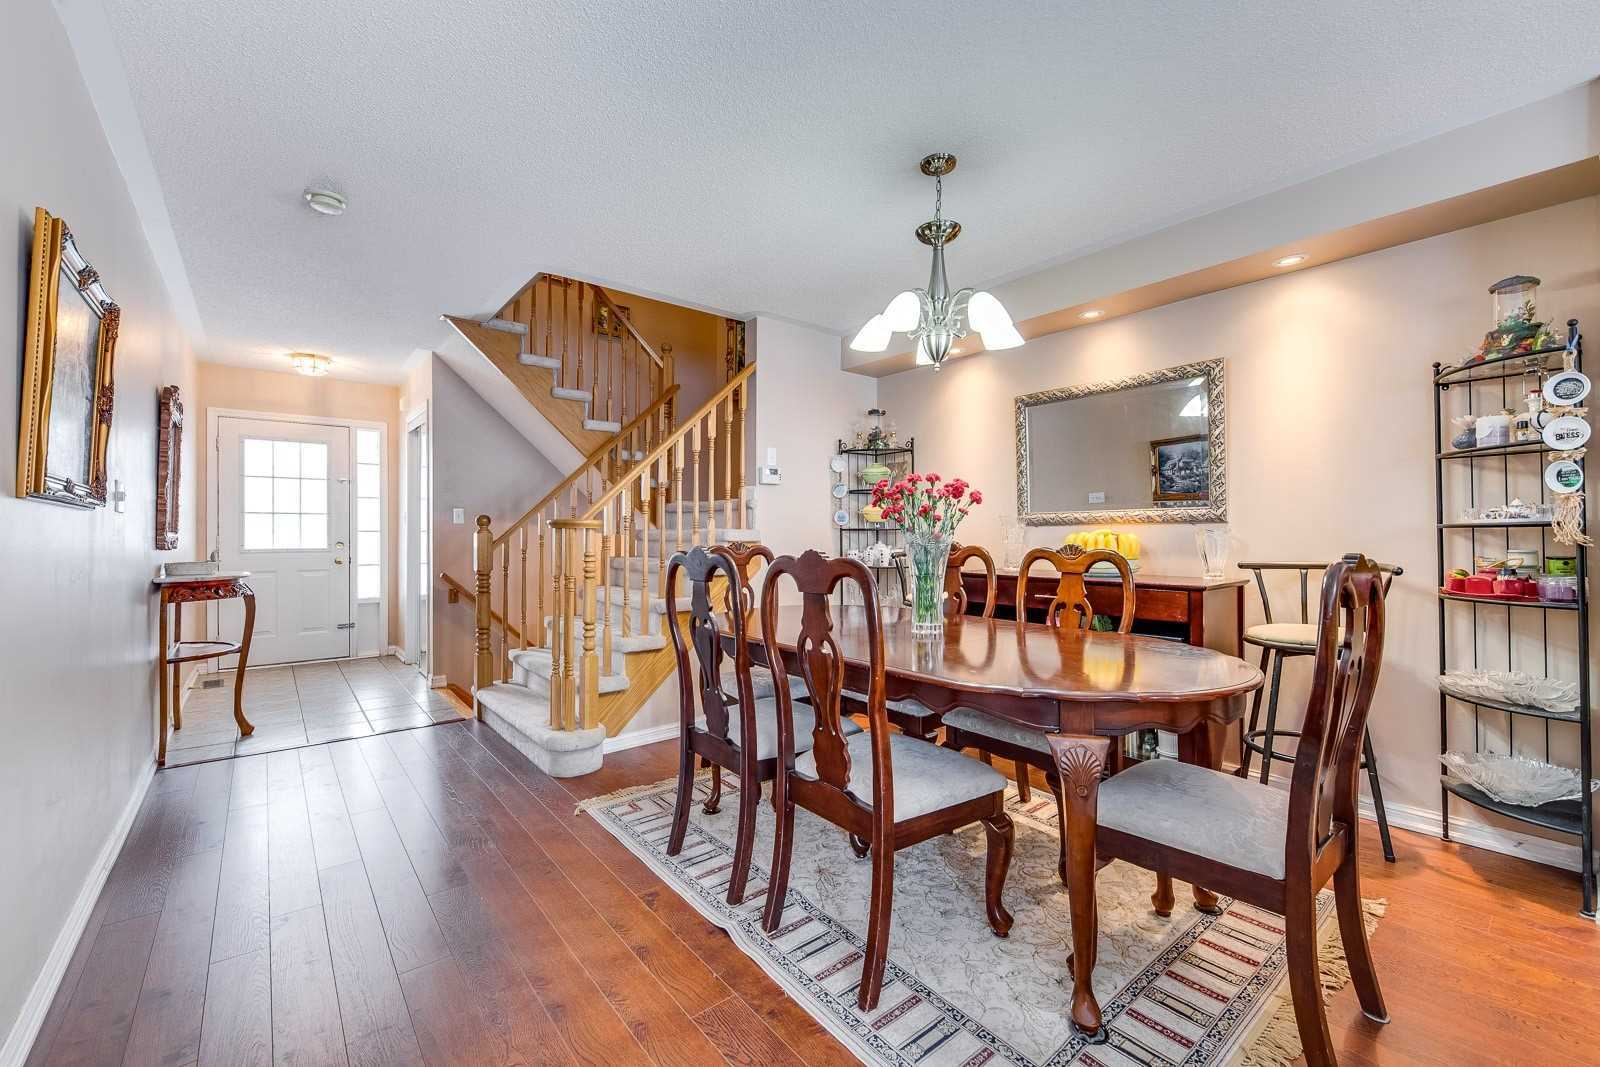 Image 15 of 20 showing inside of 3 Bedroom Att/Row/Twnhouse 2-Storey house for sale at 682 Edwards Ave, Milton L9T6B3